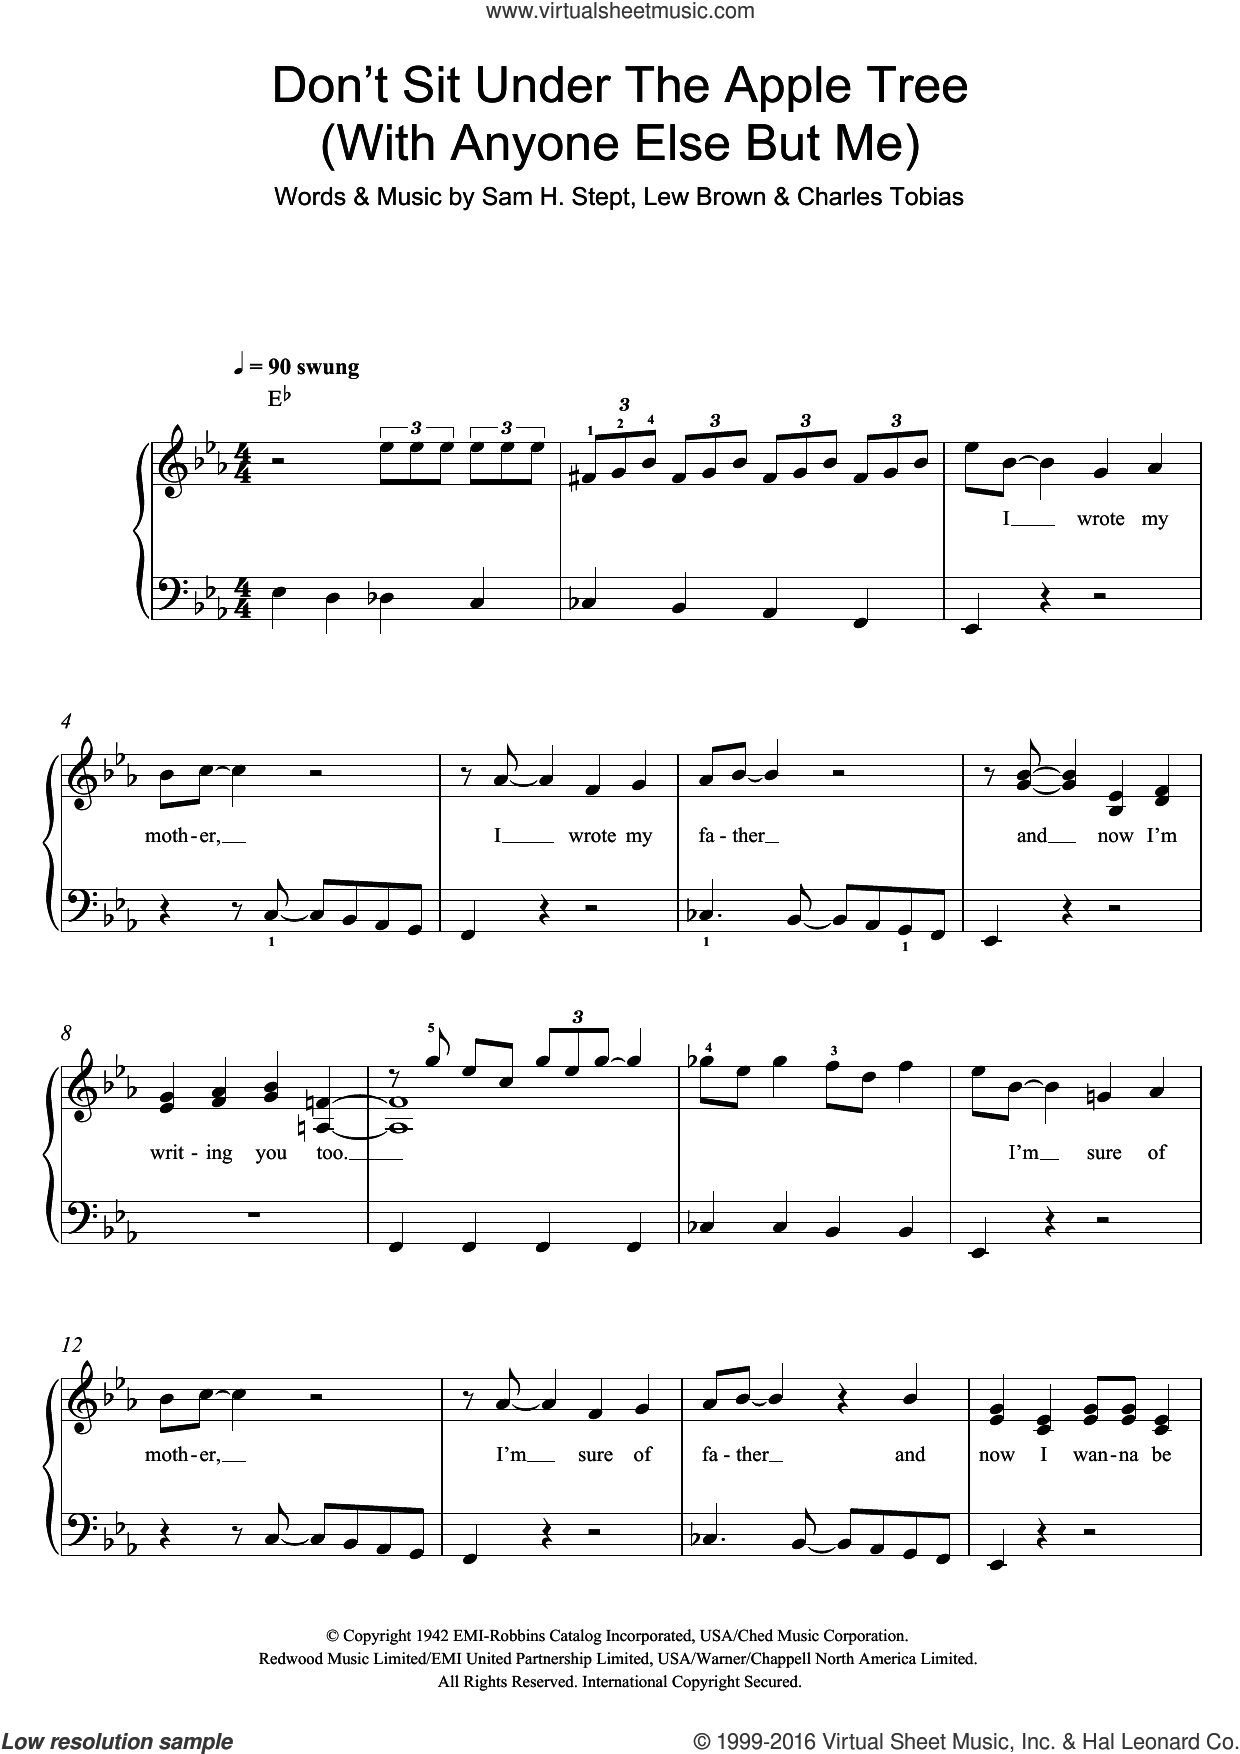 Don't Sit Under The Apple Tree (With Anyone Else But Me) sheet music for piano solo by Charles Tobias